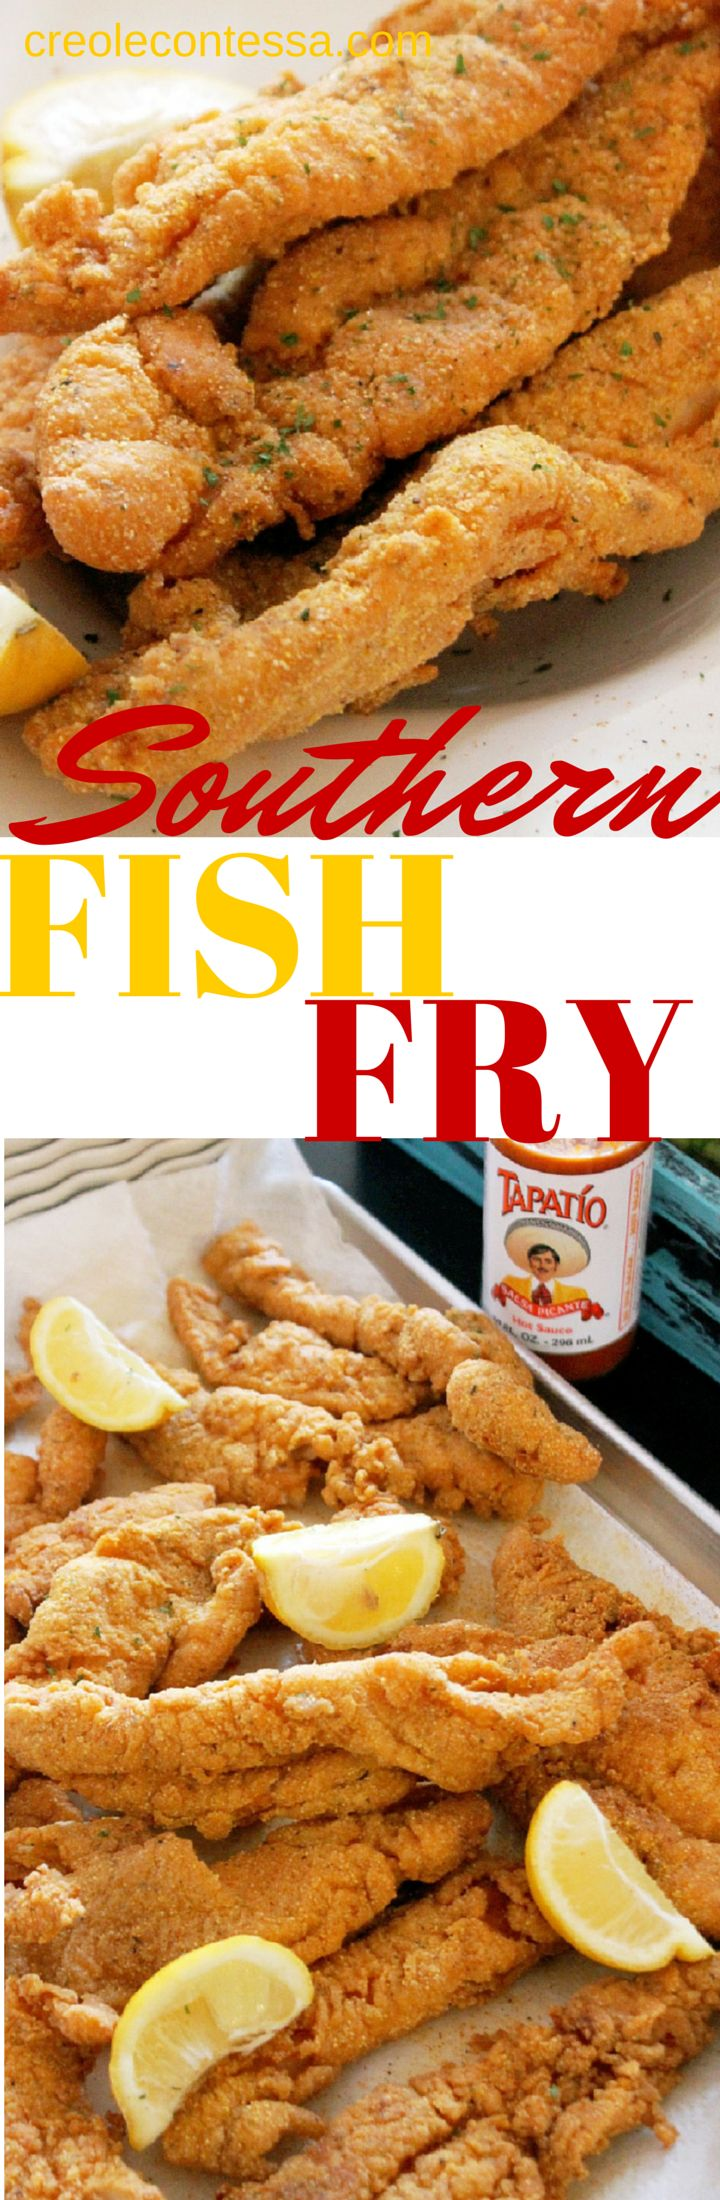 Southern Fish Fry-Creole Contessa  (she has such insanely good recipes!!)